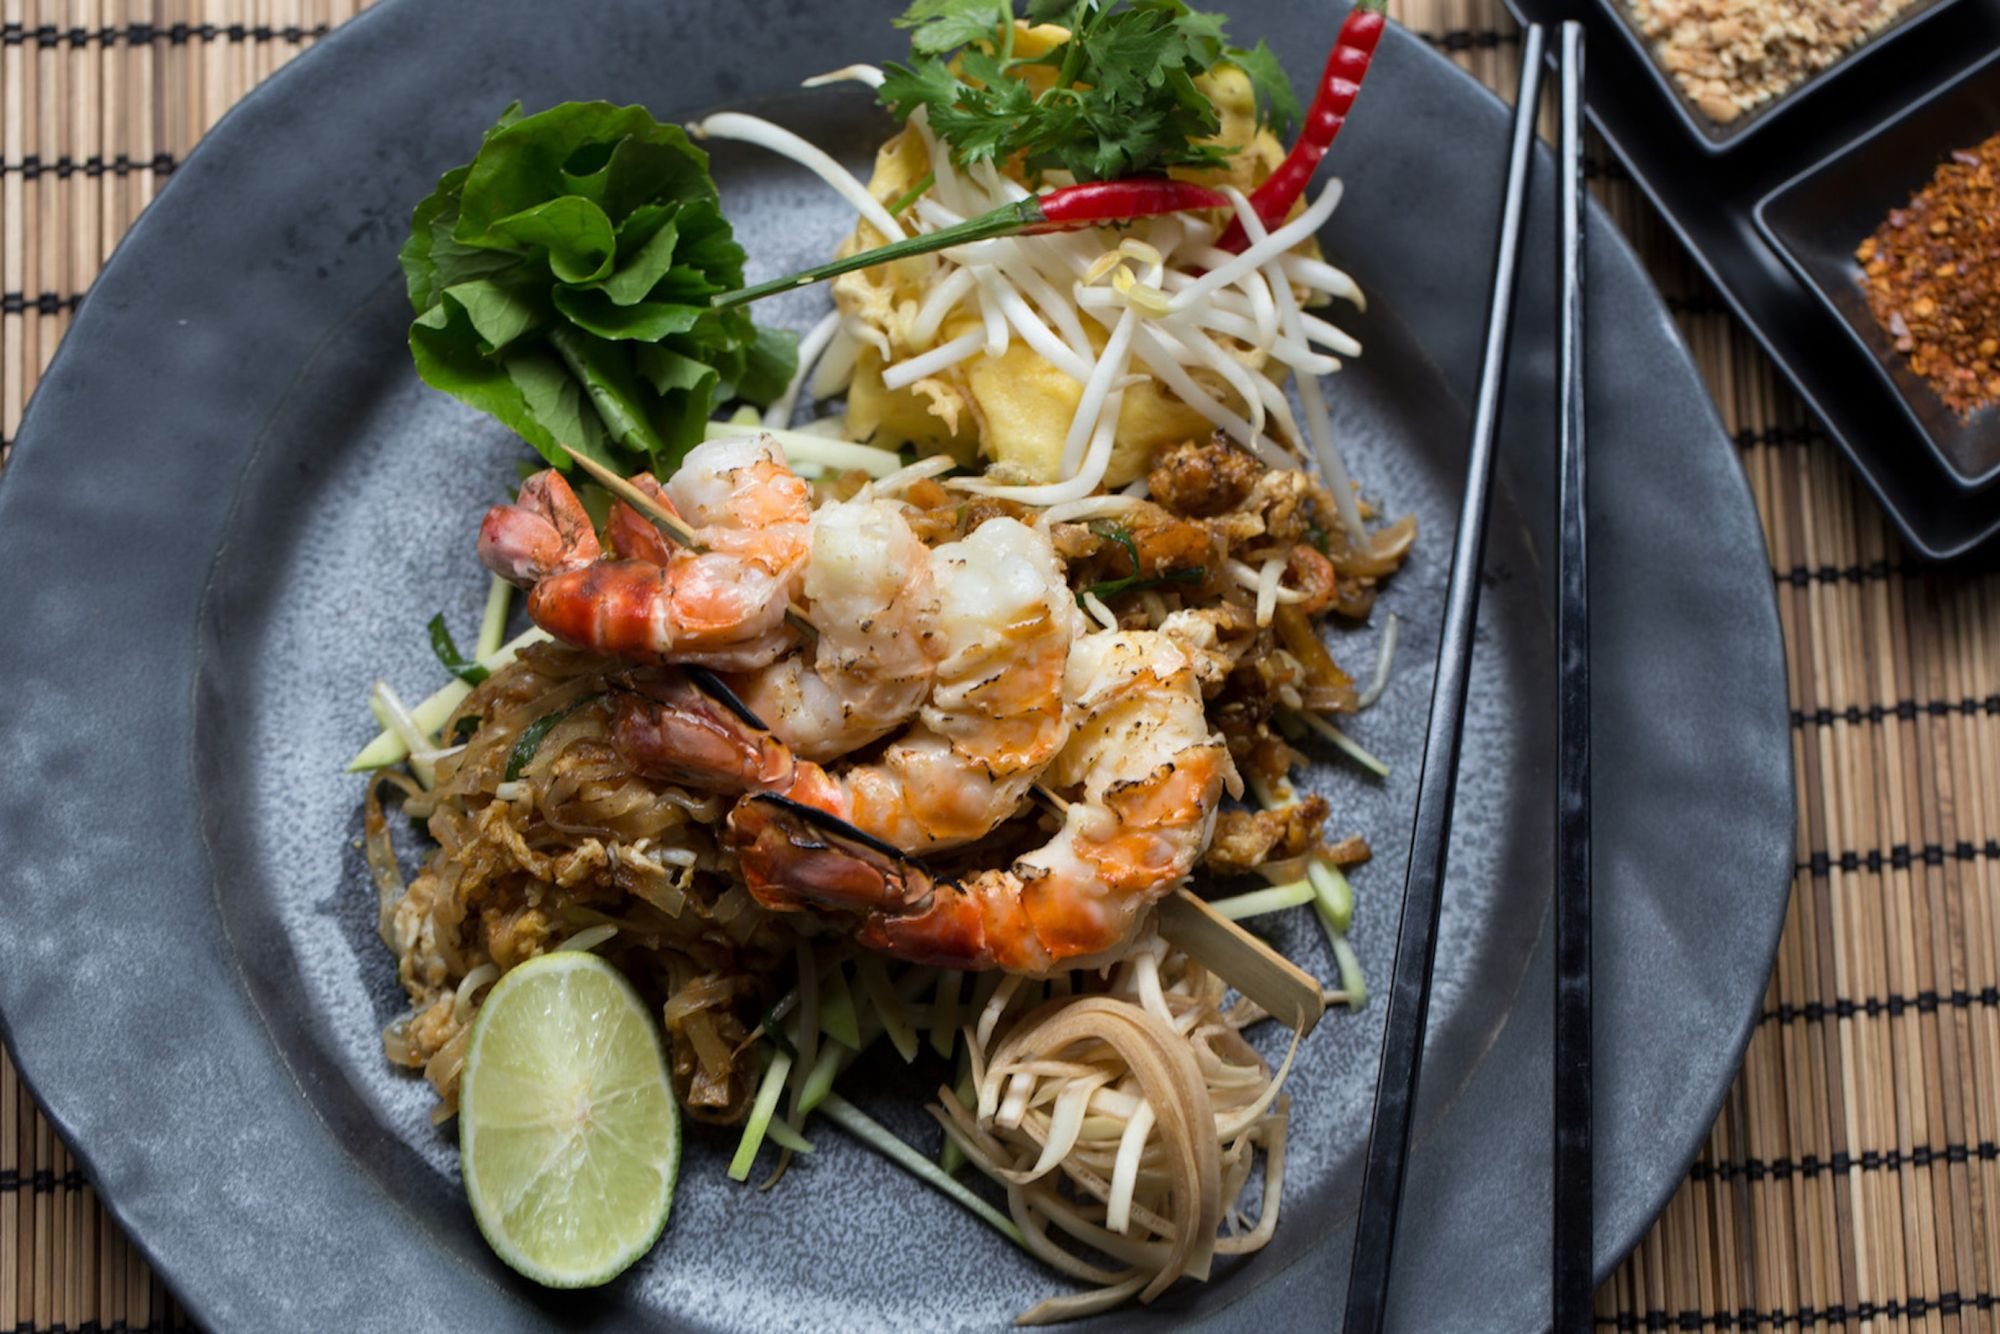 At Home Recipes: Explore Asian Flavours with These Shrimp Recipes